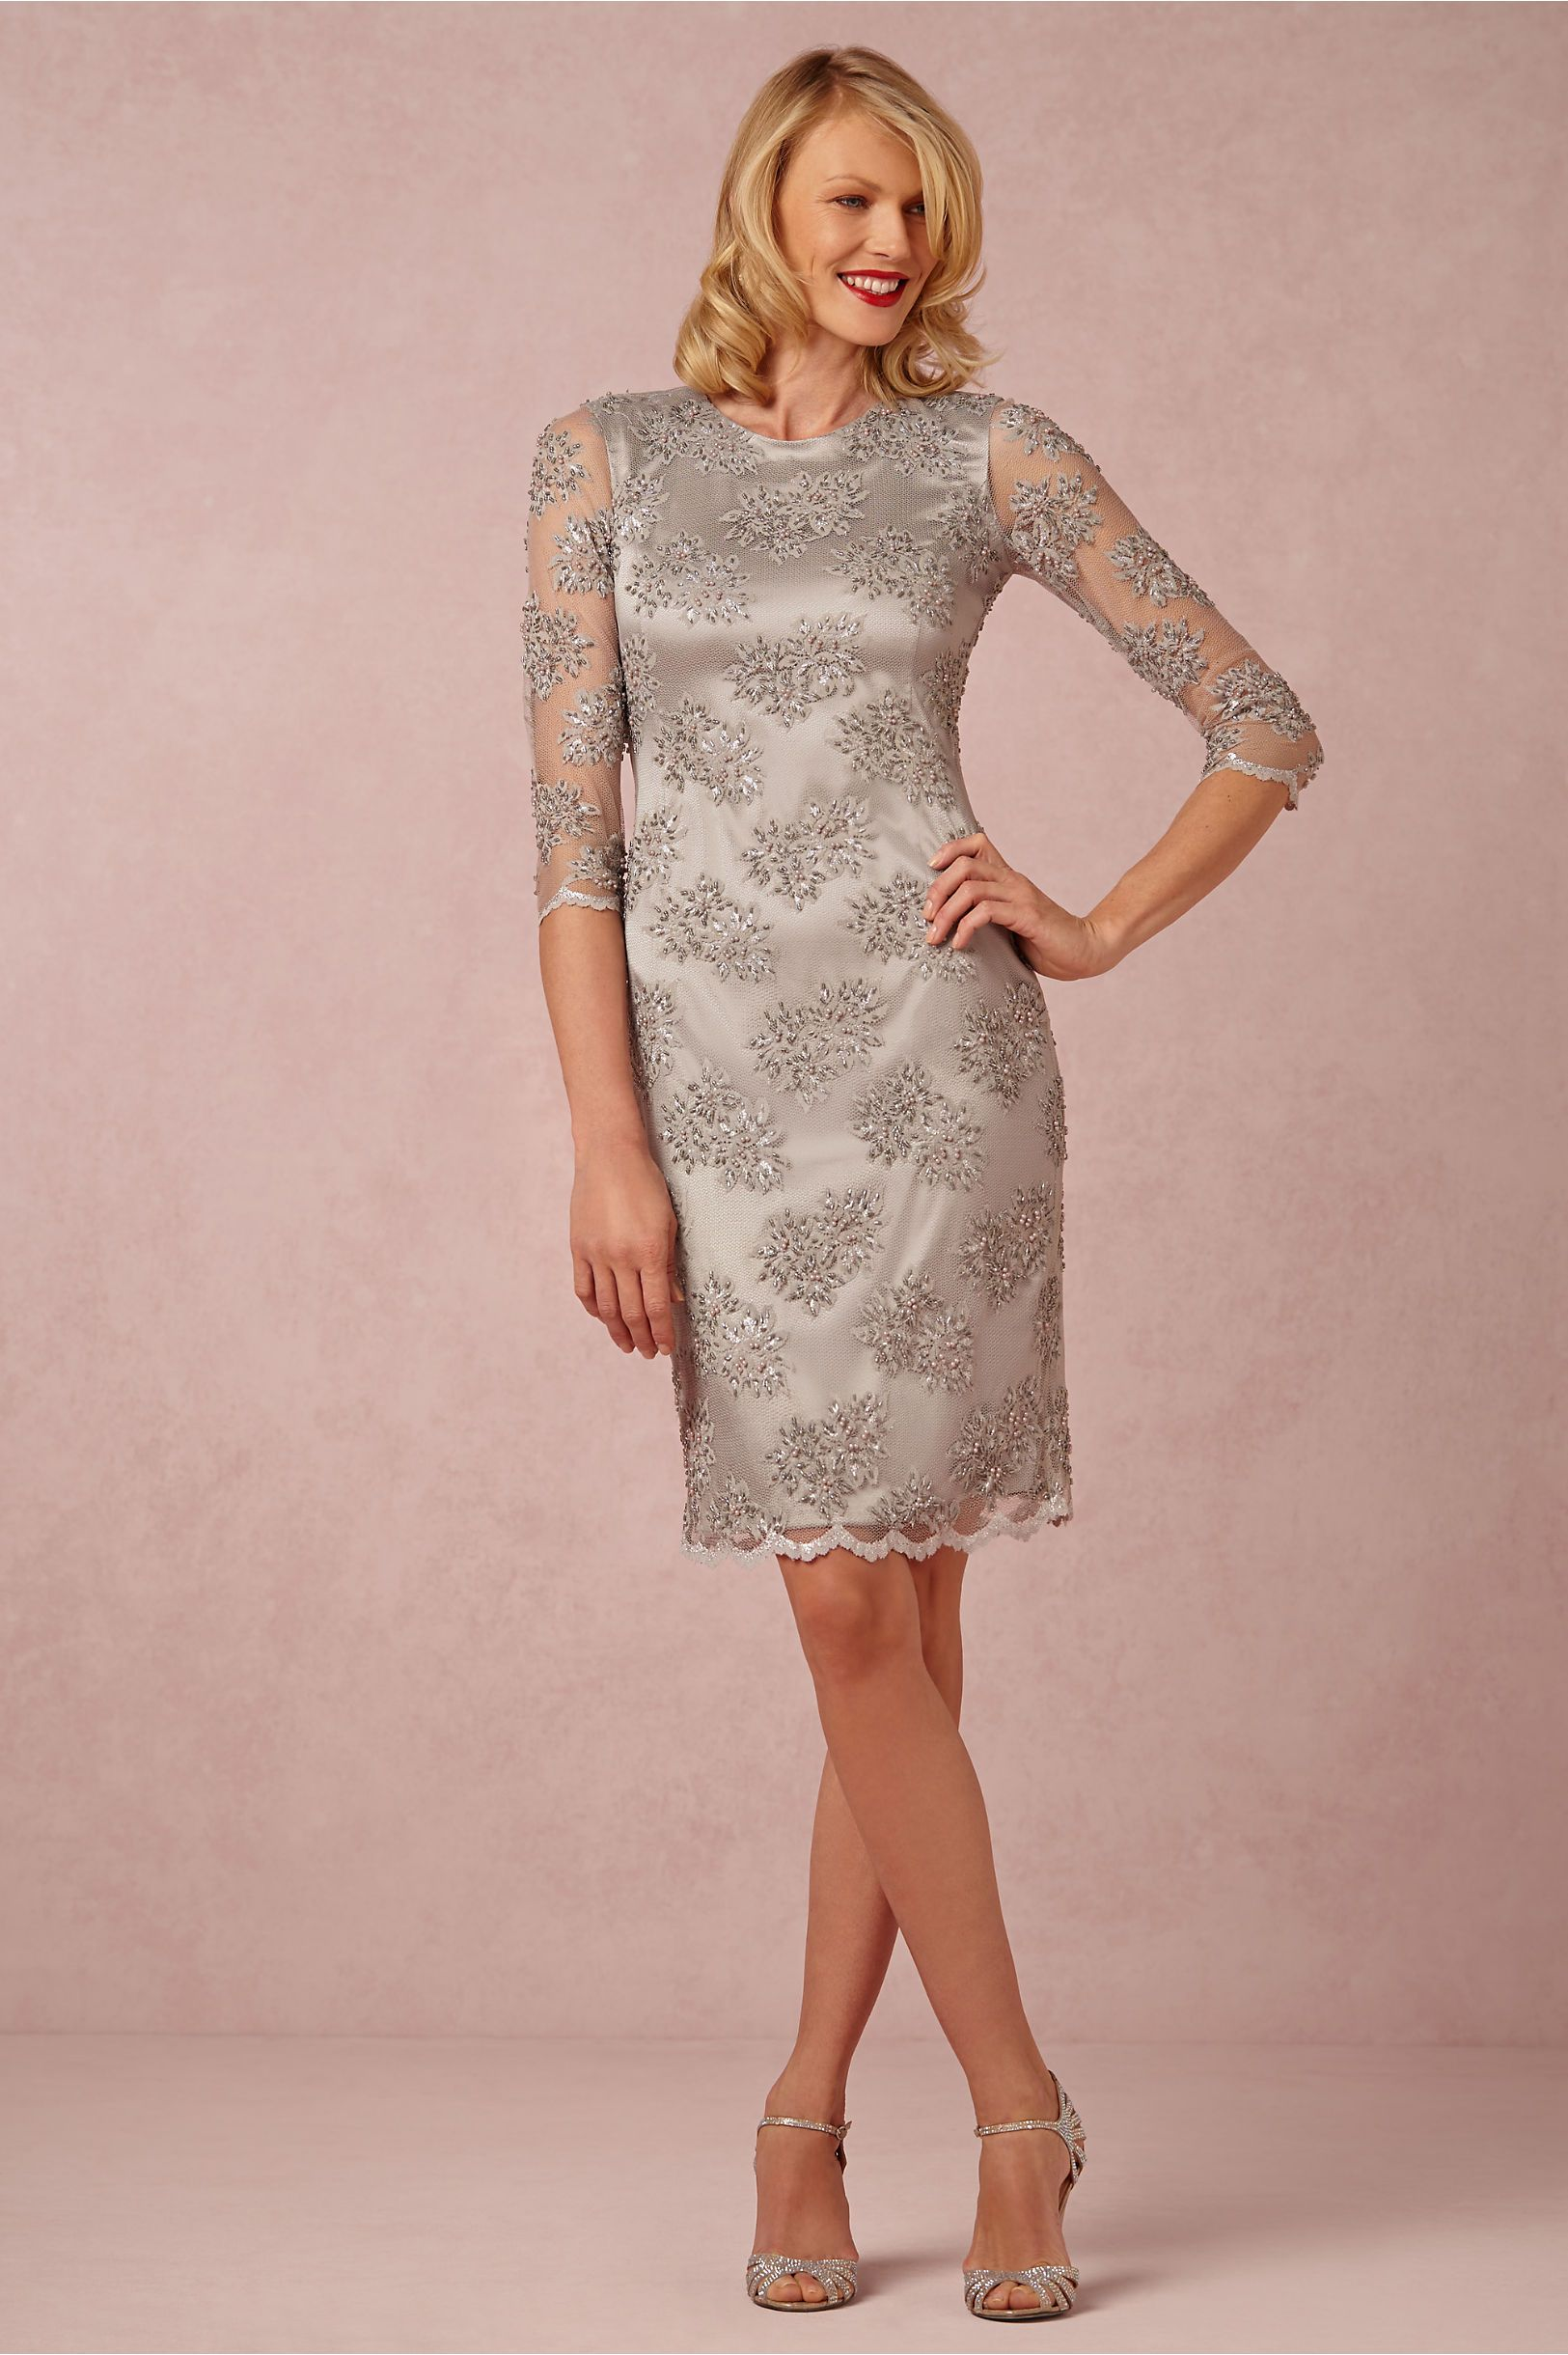 Crystaline Dress in Bridal Party & Guests View All Dresses at BHLDN ...